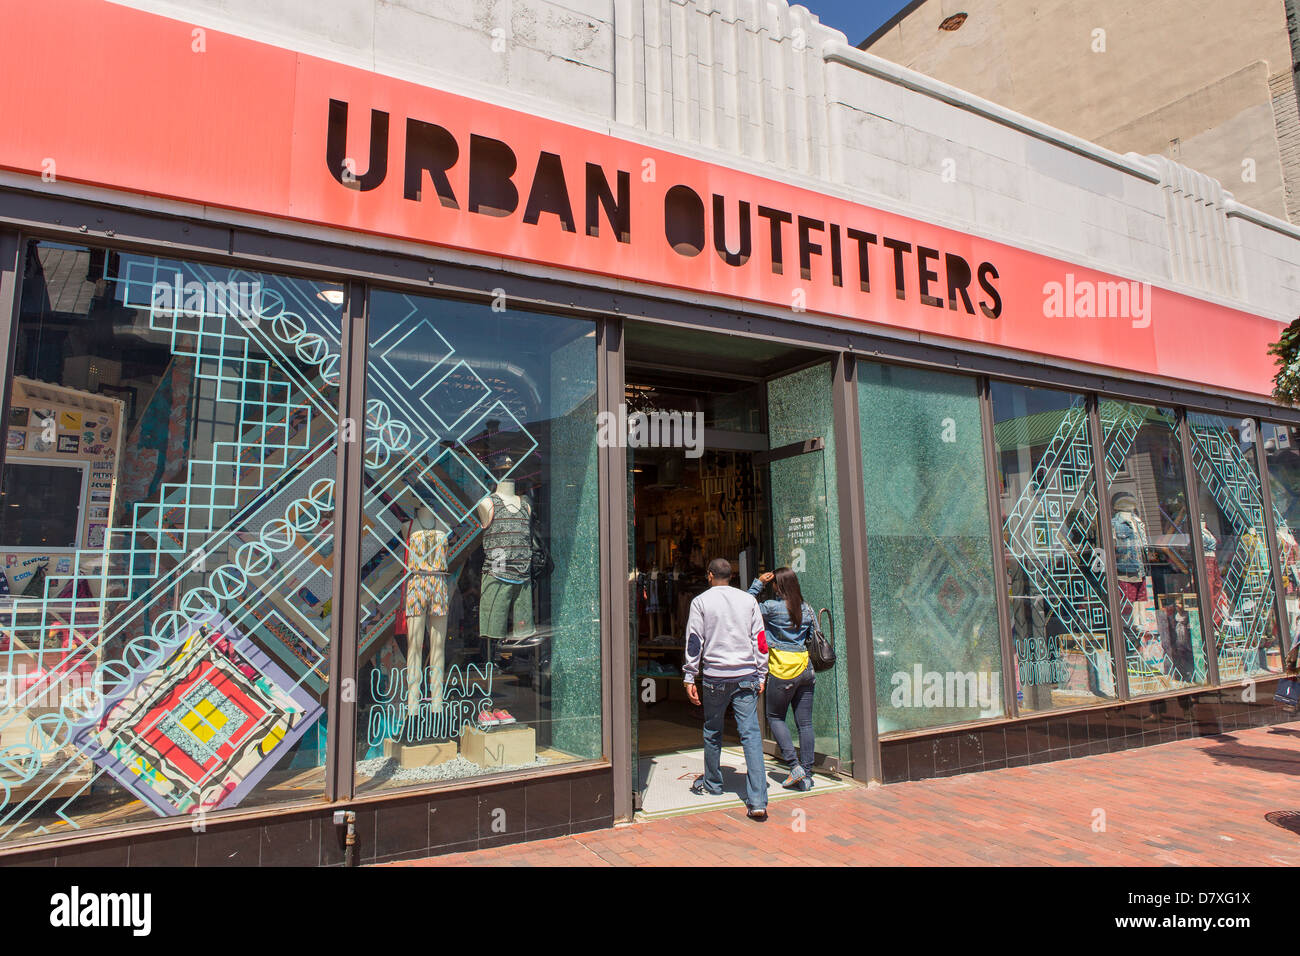 Urban Outfitters Promo Codes & Holiday Coupons for December, Save with 10 active Urban Outfitters promo codes, coupons, and free shipping deals. 🔥 Today's Top Deal: (@Amazon) Up To 25% Off Urban Outfitters. On average, shoppers save $26 using Urban Outfitters coupons from adalatblog.ml